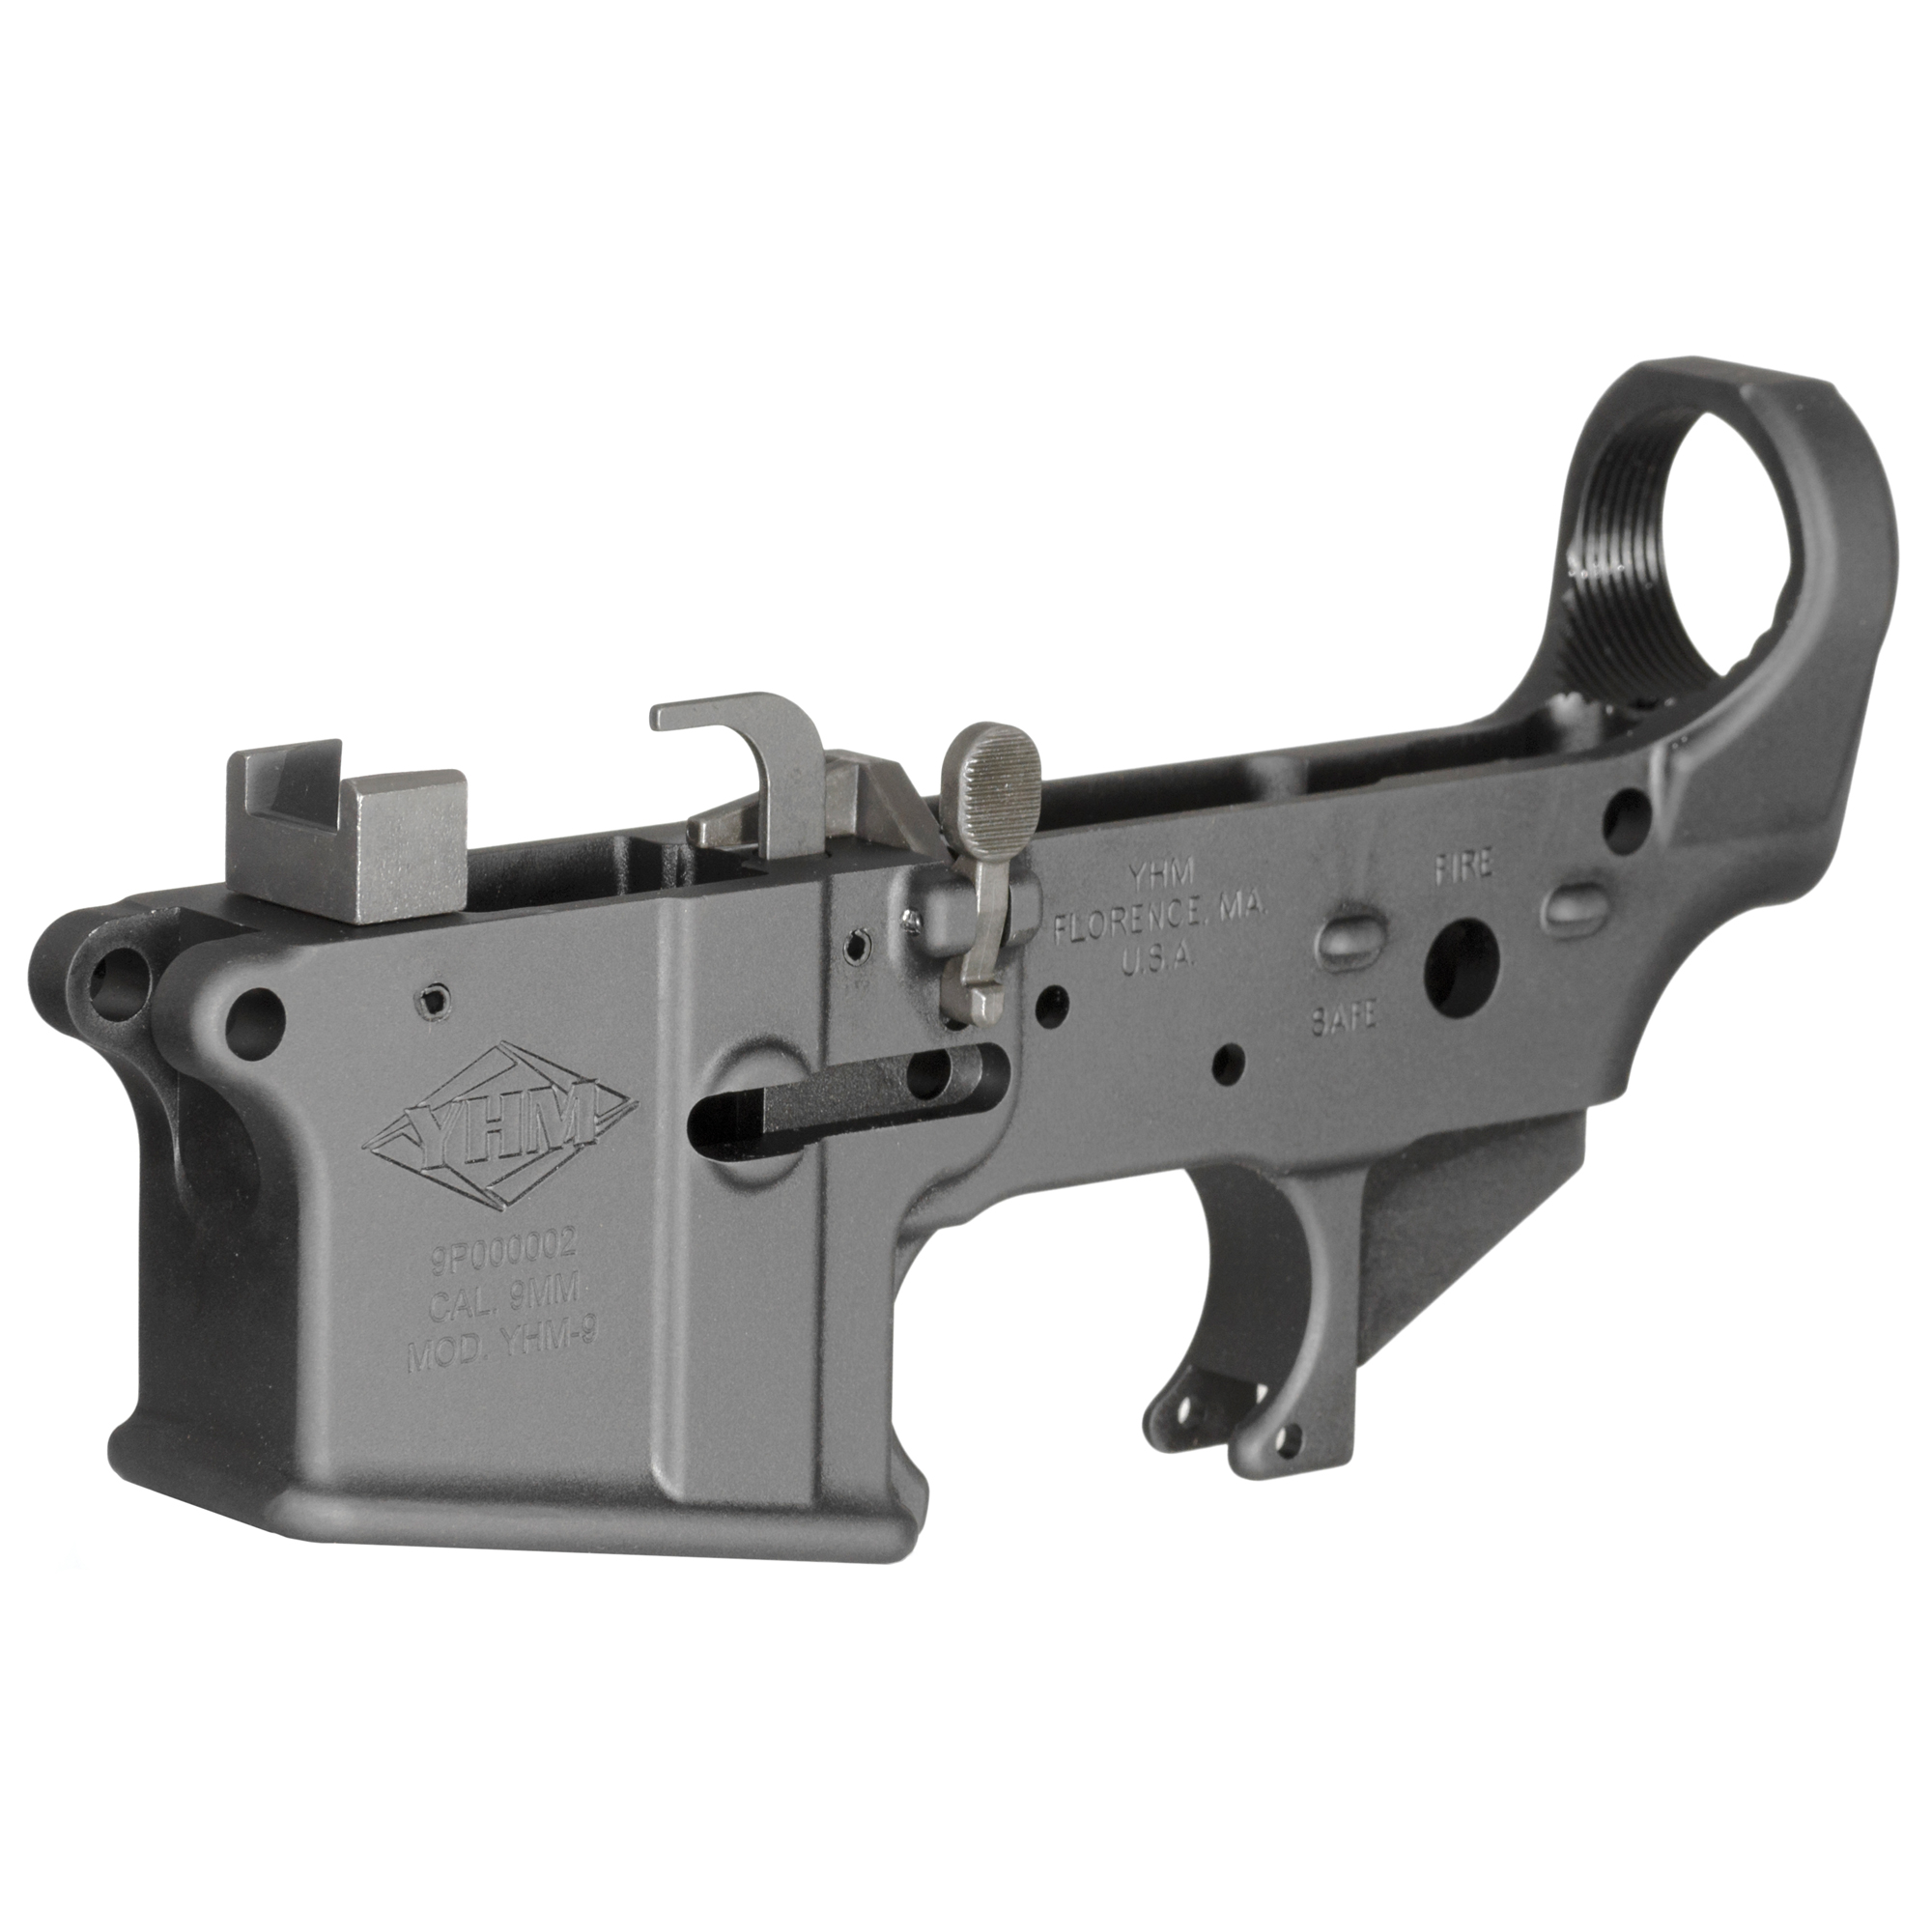 This semi-auto lower receiver lets you build a dedicated 9mm AR. The magazine well is machined to accept Colt style 9mm magazines and this eliminates the need for a separate conversion block and the reliability problems that can result from converting a standard .223/5.56mm lower with add-on parts.